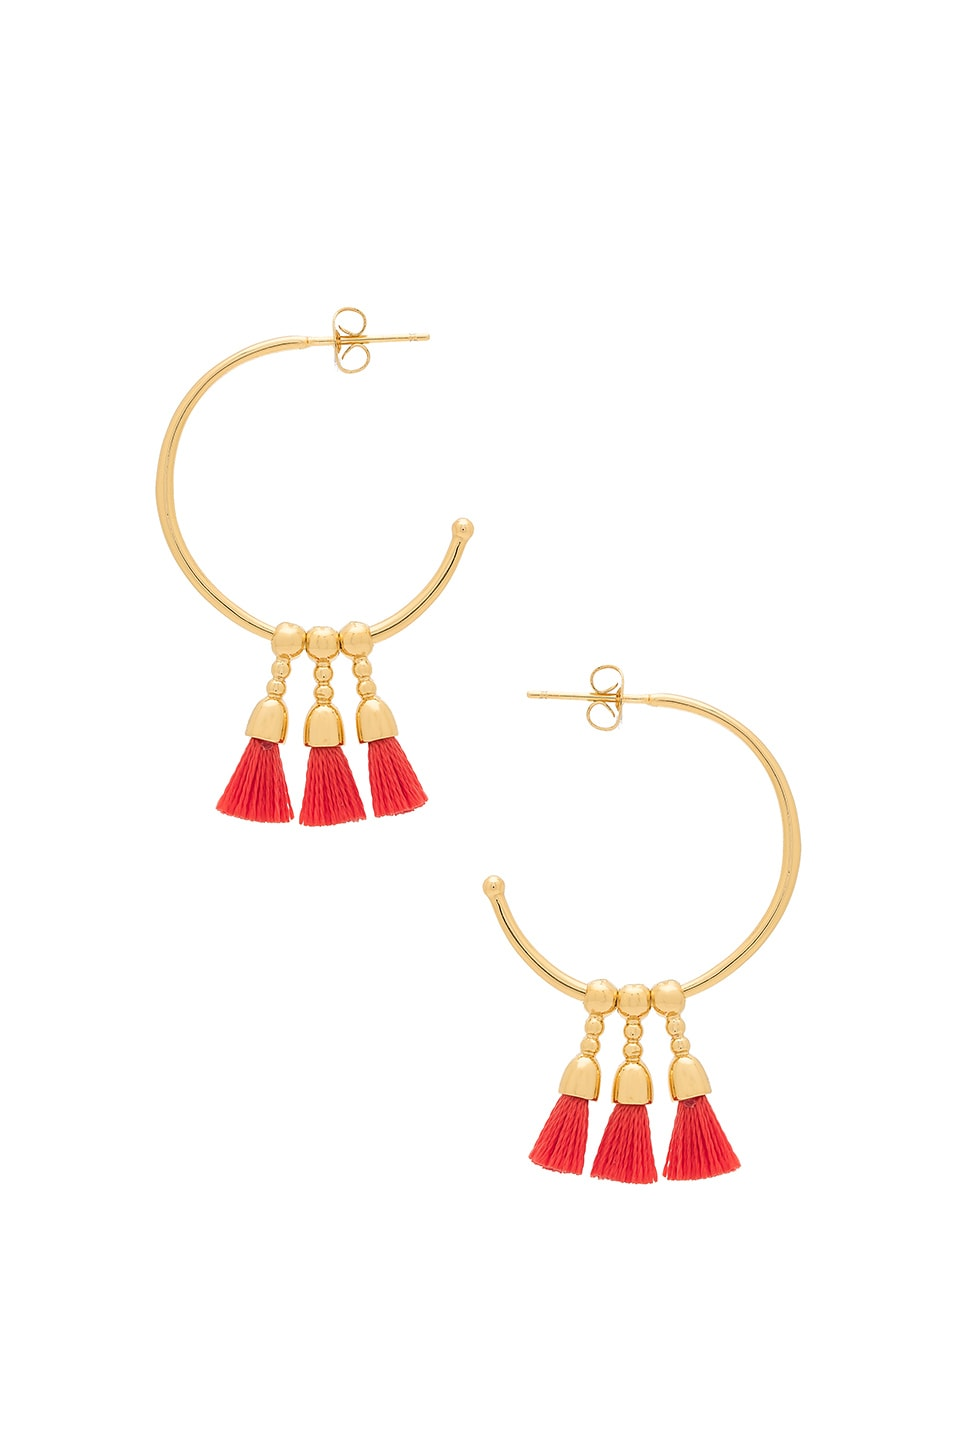 gorjana Baja Hoop Earrings in Poppy & Gold